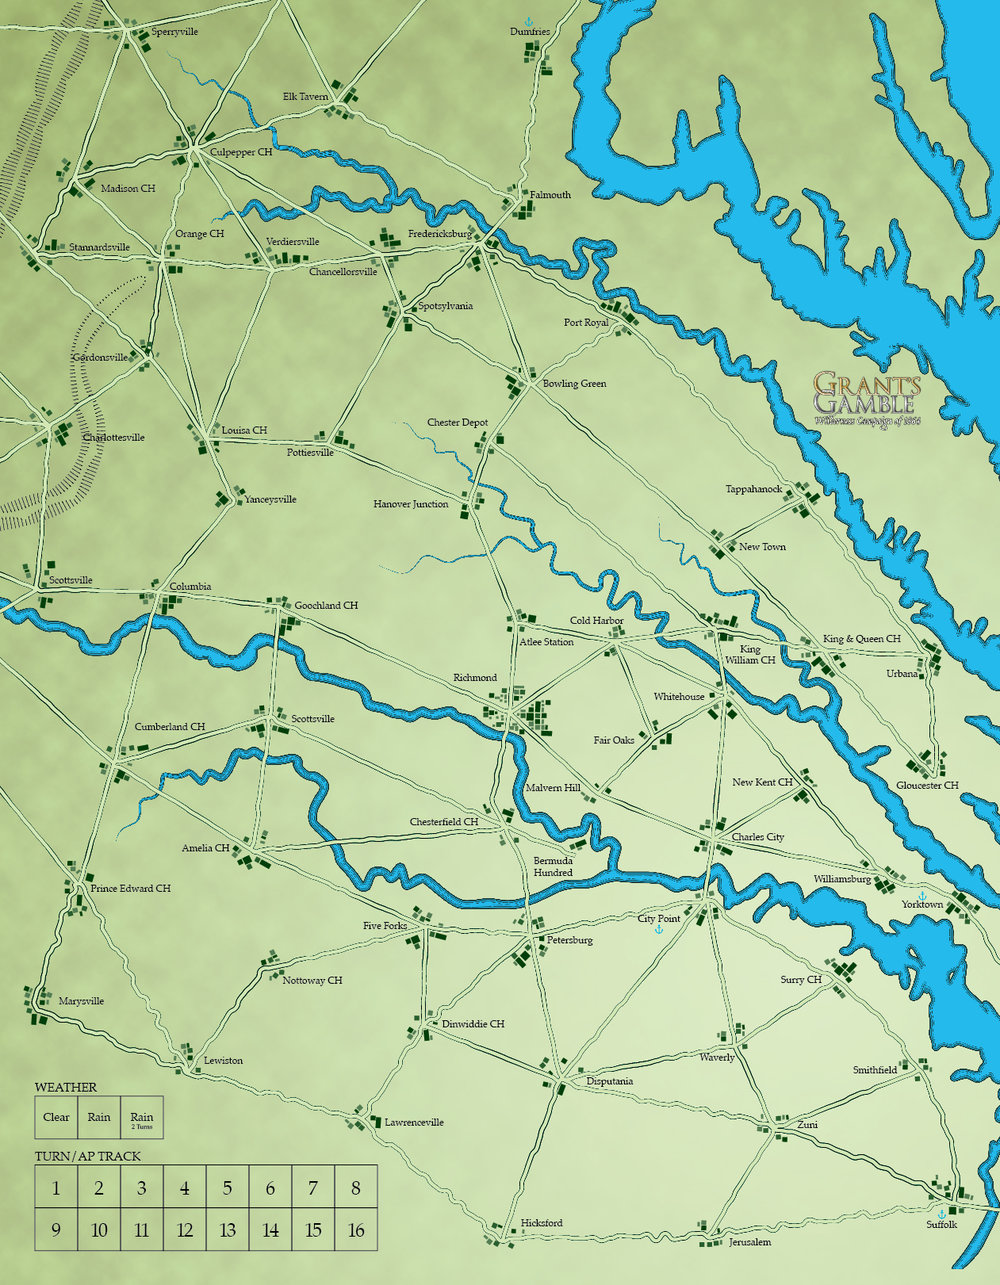 map_rasterRivers03-02.jpg